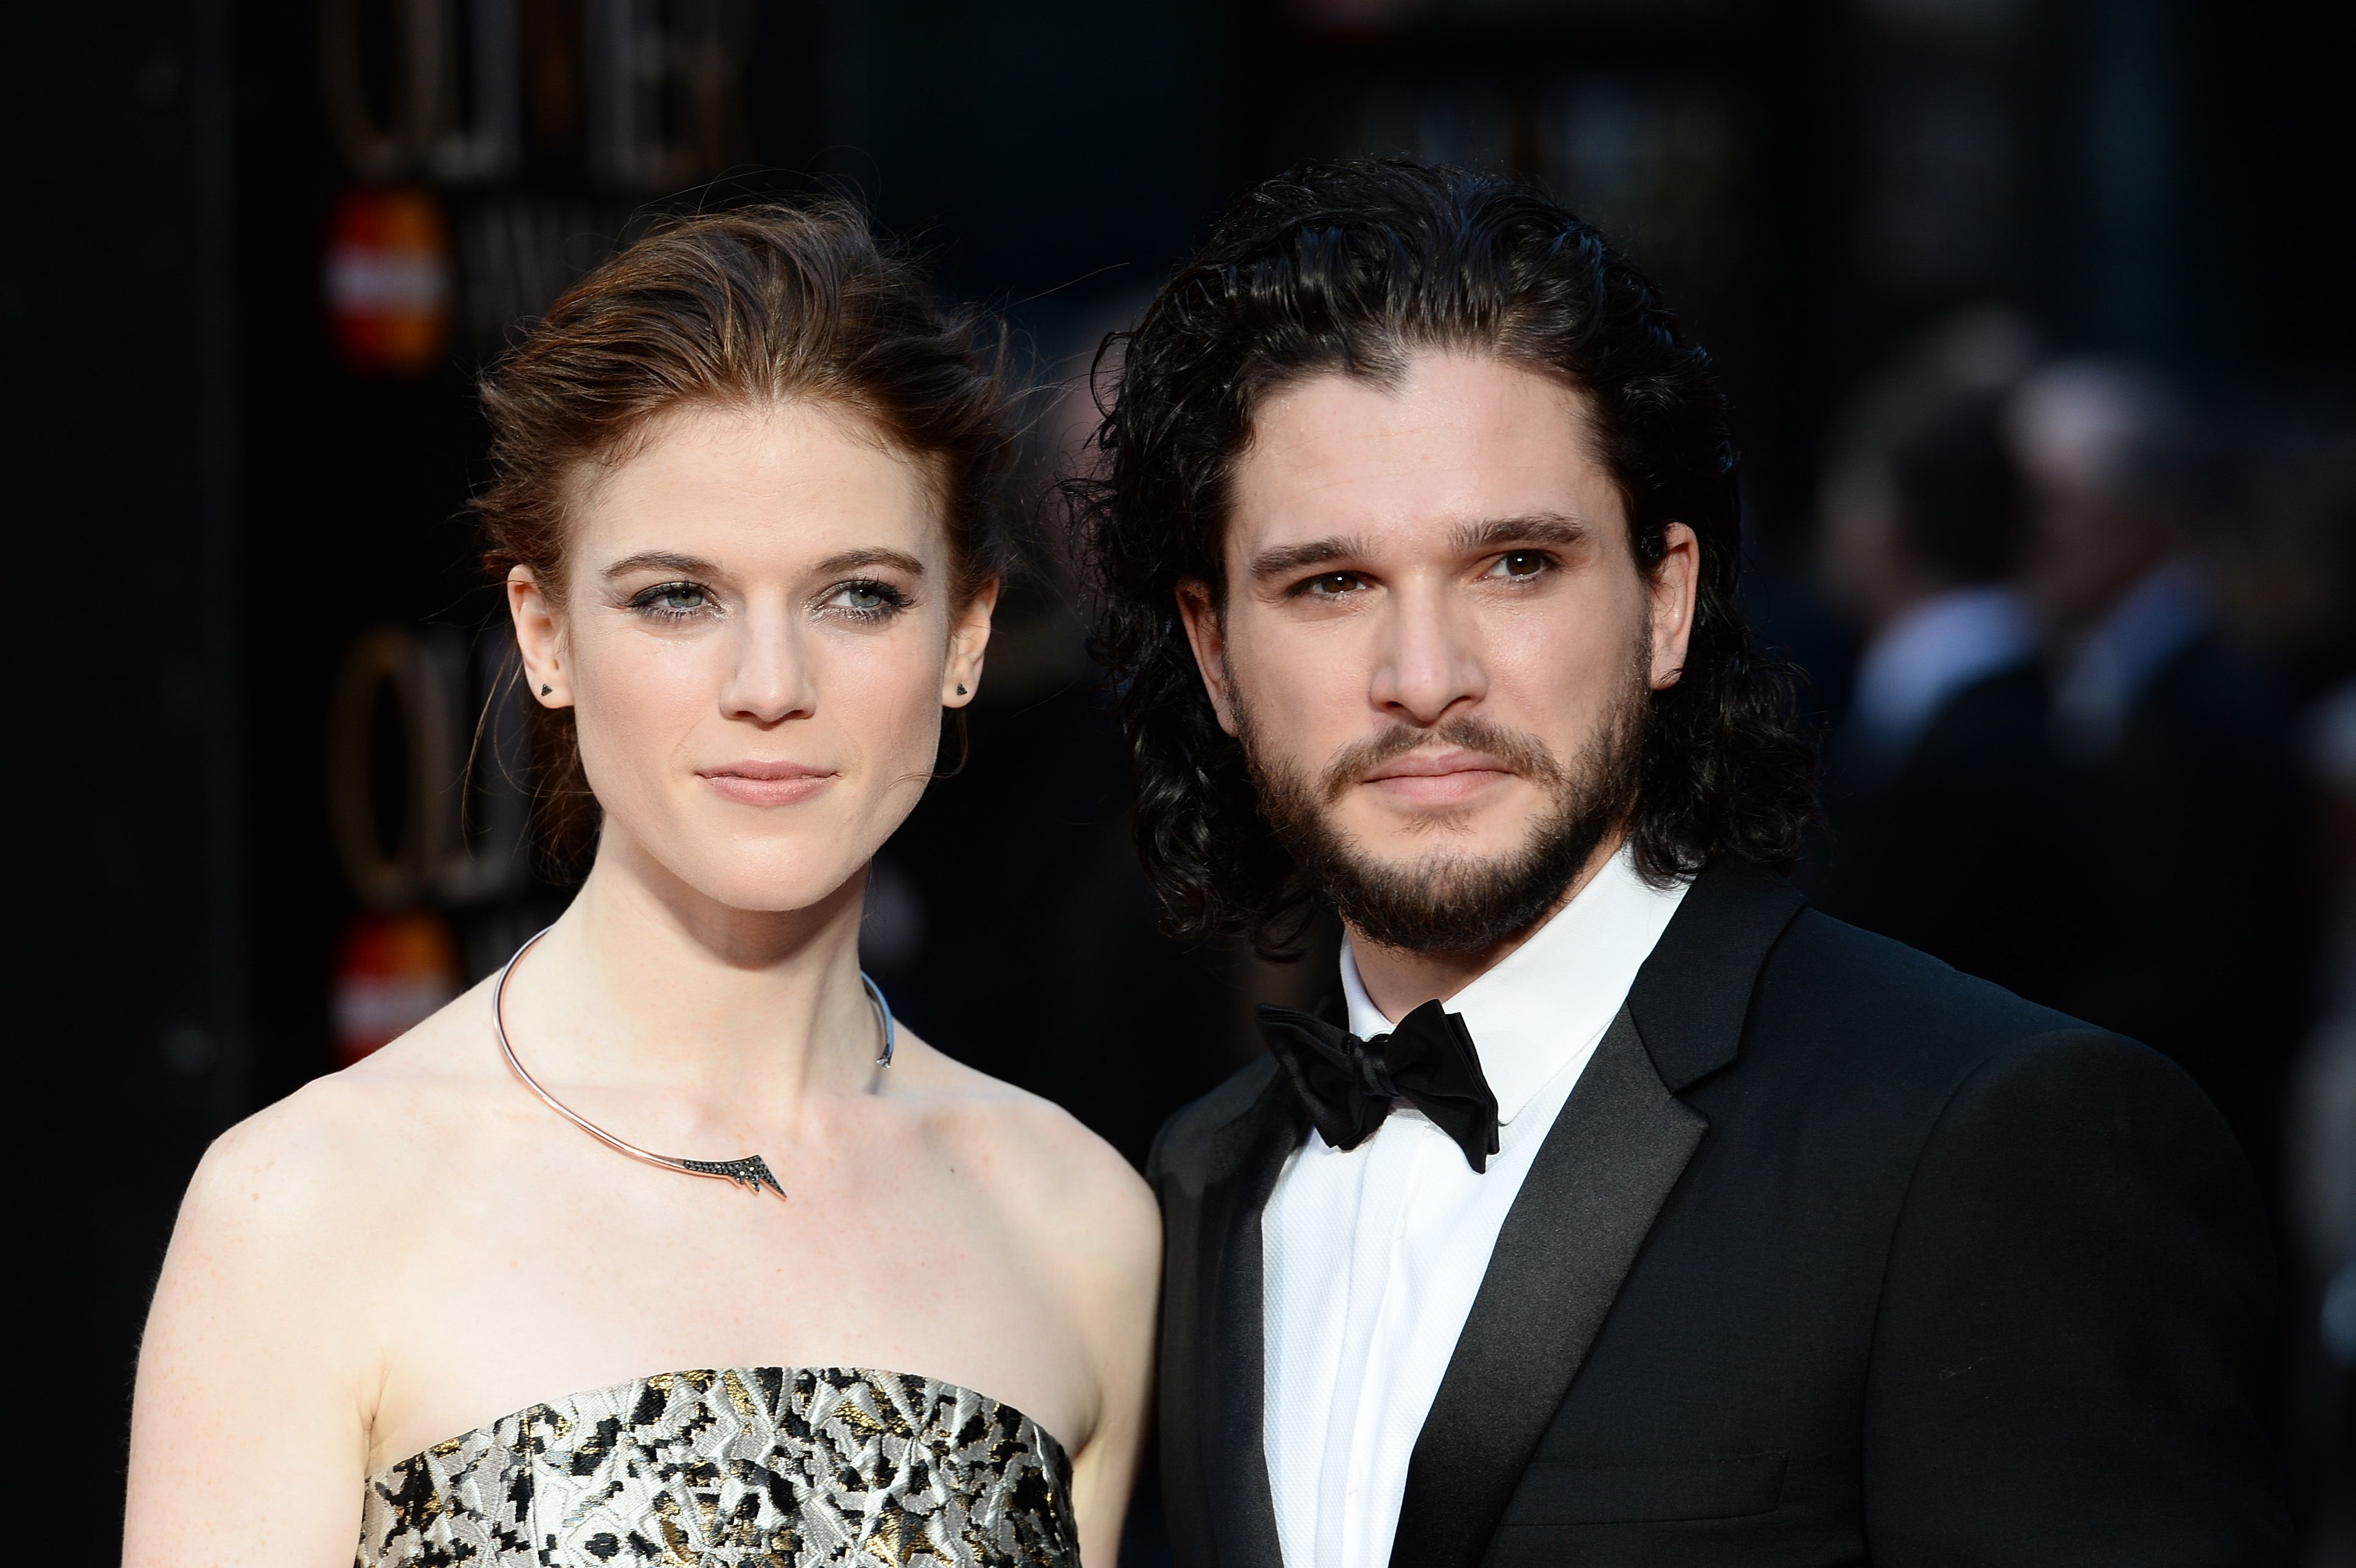 Kit Harington And Rose Leslie Relationship Timeline From Game Of